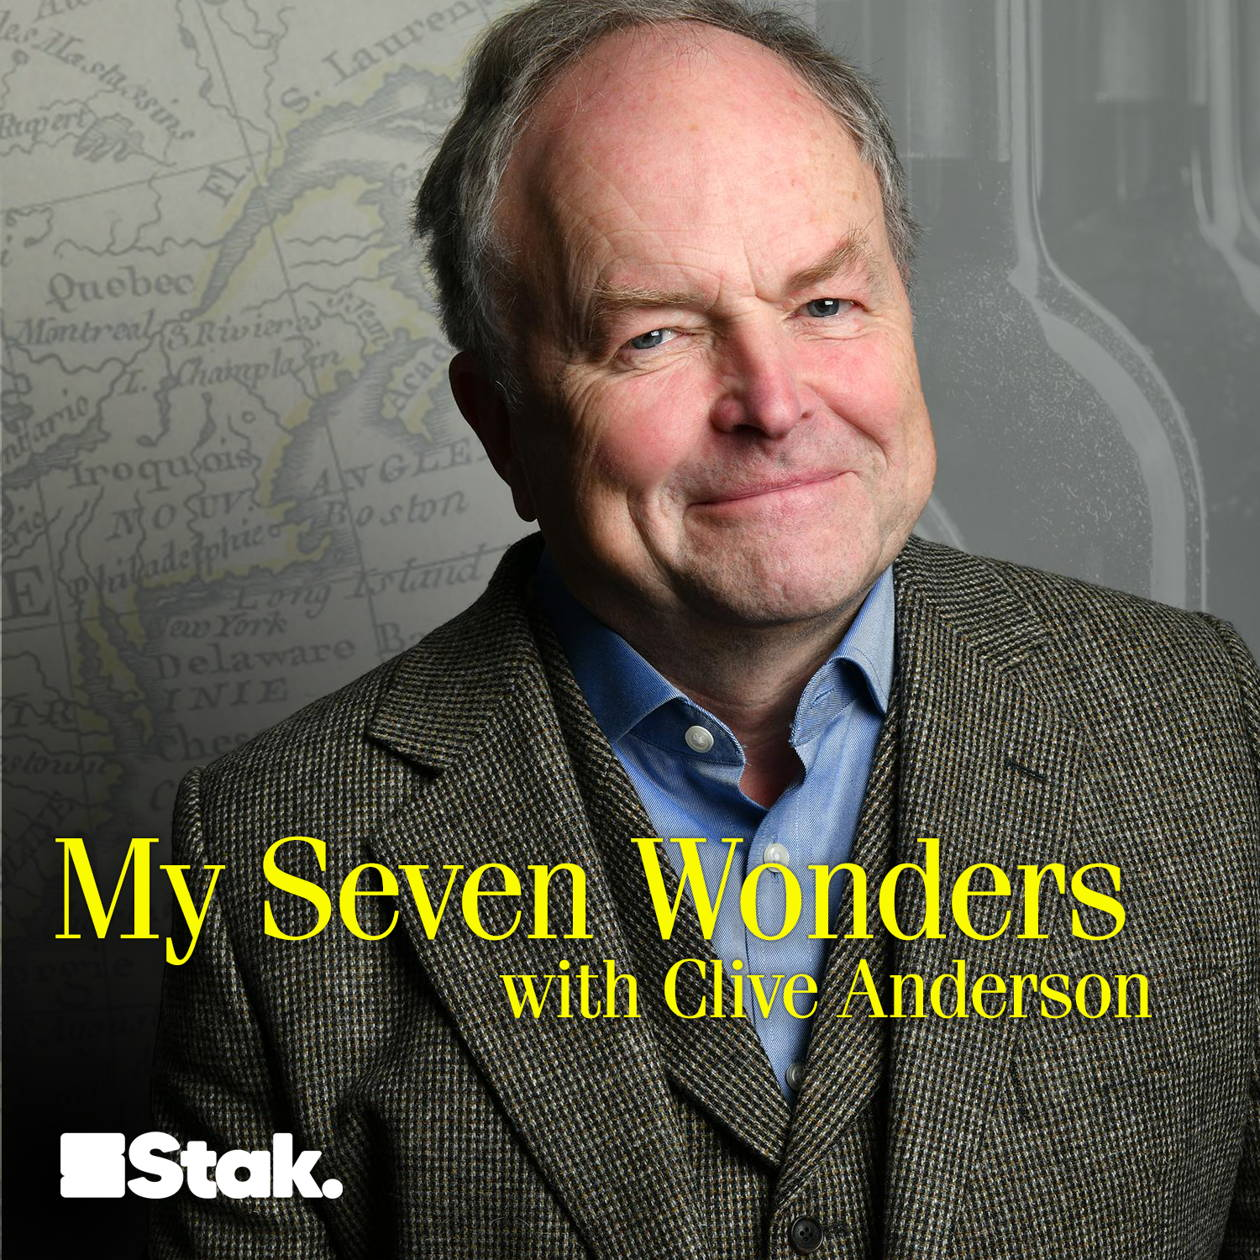 Artwork for the My Seven Wonders with Clive Anderson podcast.